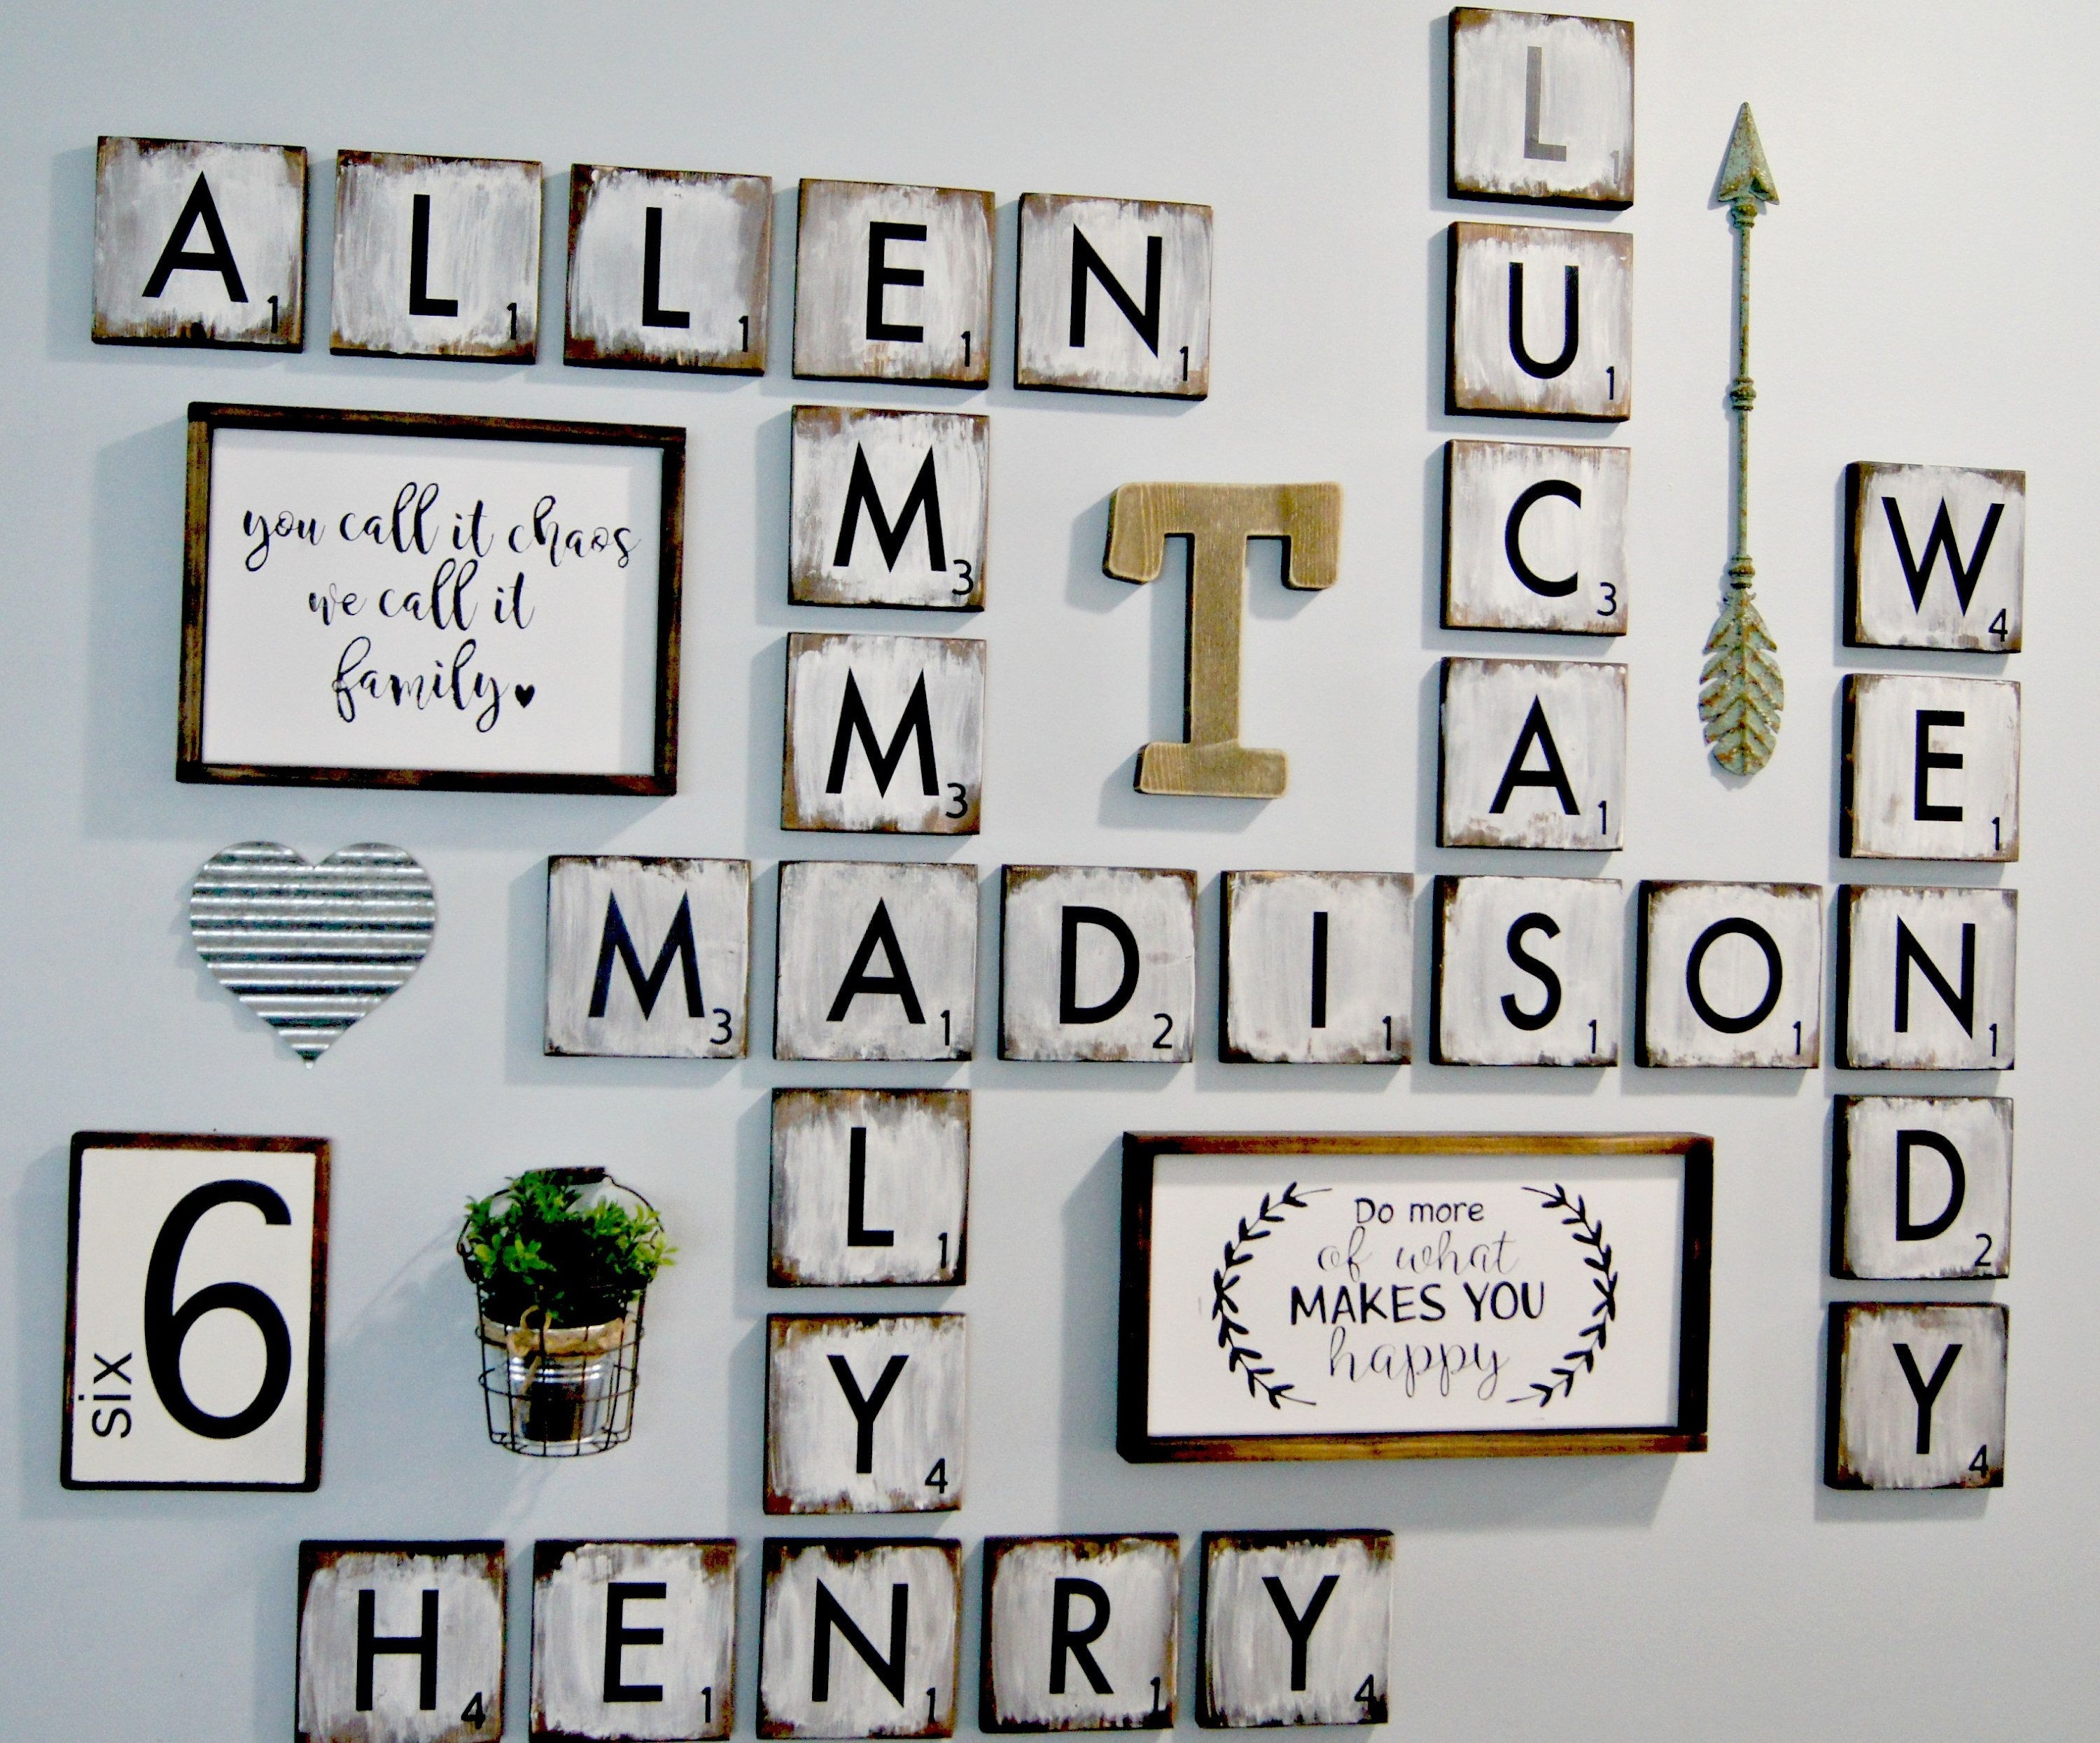 Scrabble Letters Wall Decor Diy Pinterest Design Of Family Scrabble Intended For Current Scrabble Wall Art (View 12 of 20)